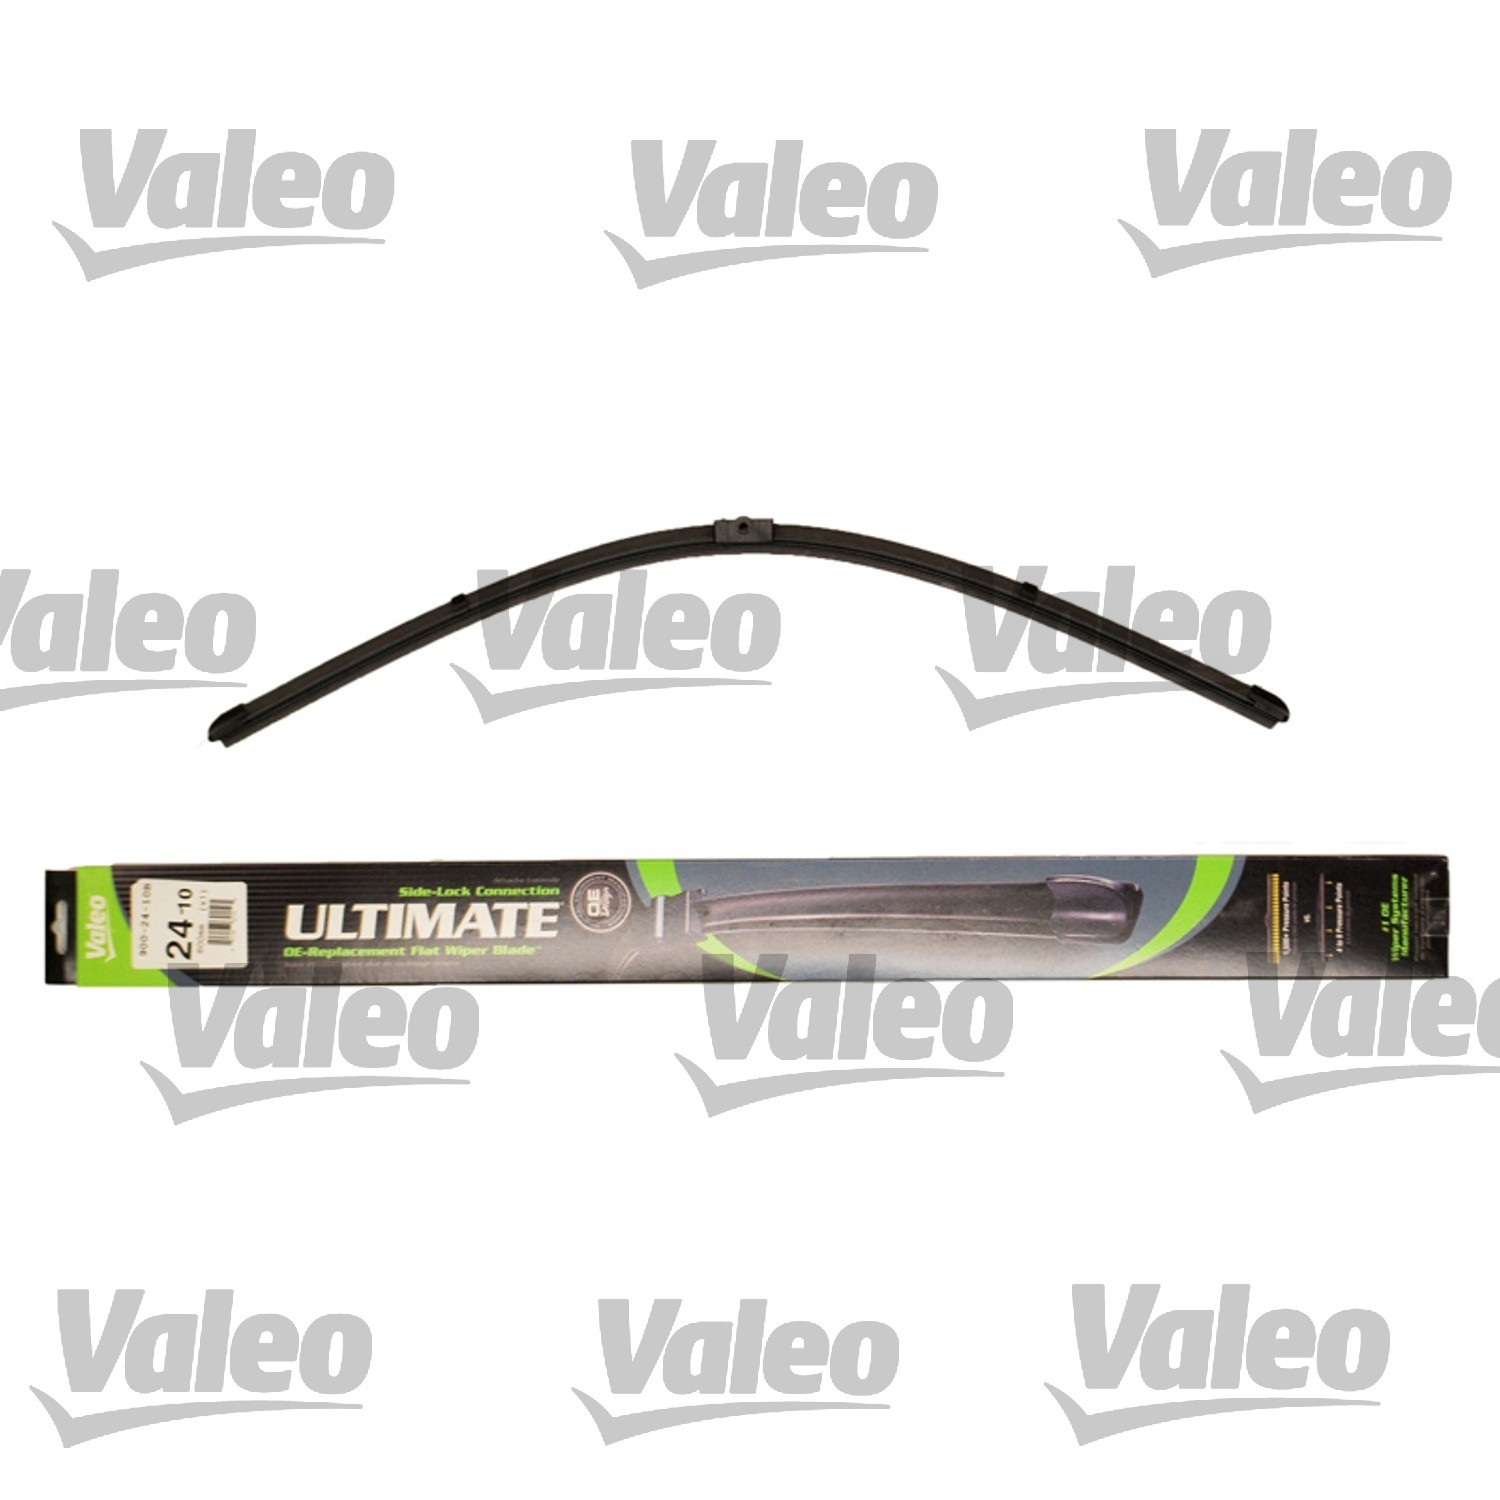 VALEO - Ultimate Wiper Blade - VEO 900-24-10B